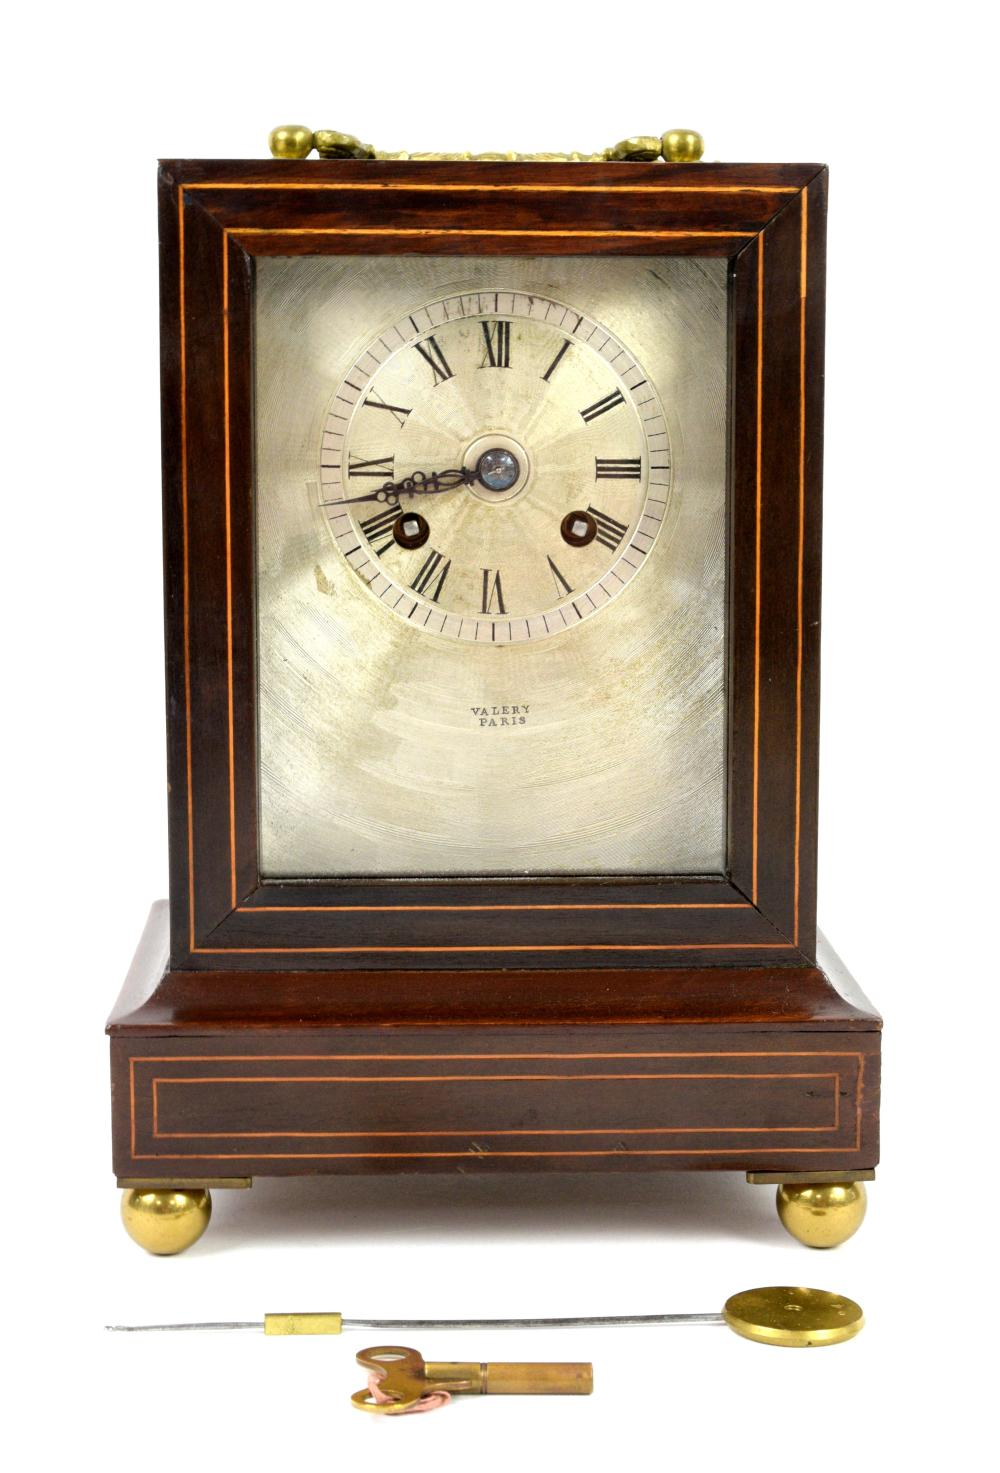 19th century two train mantle clock by Valery, Par